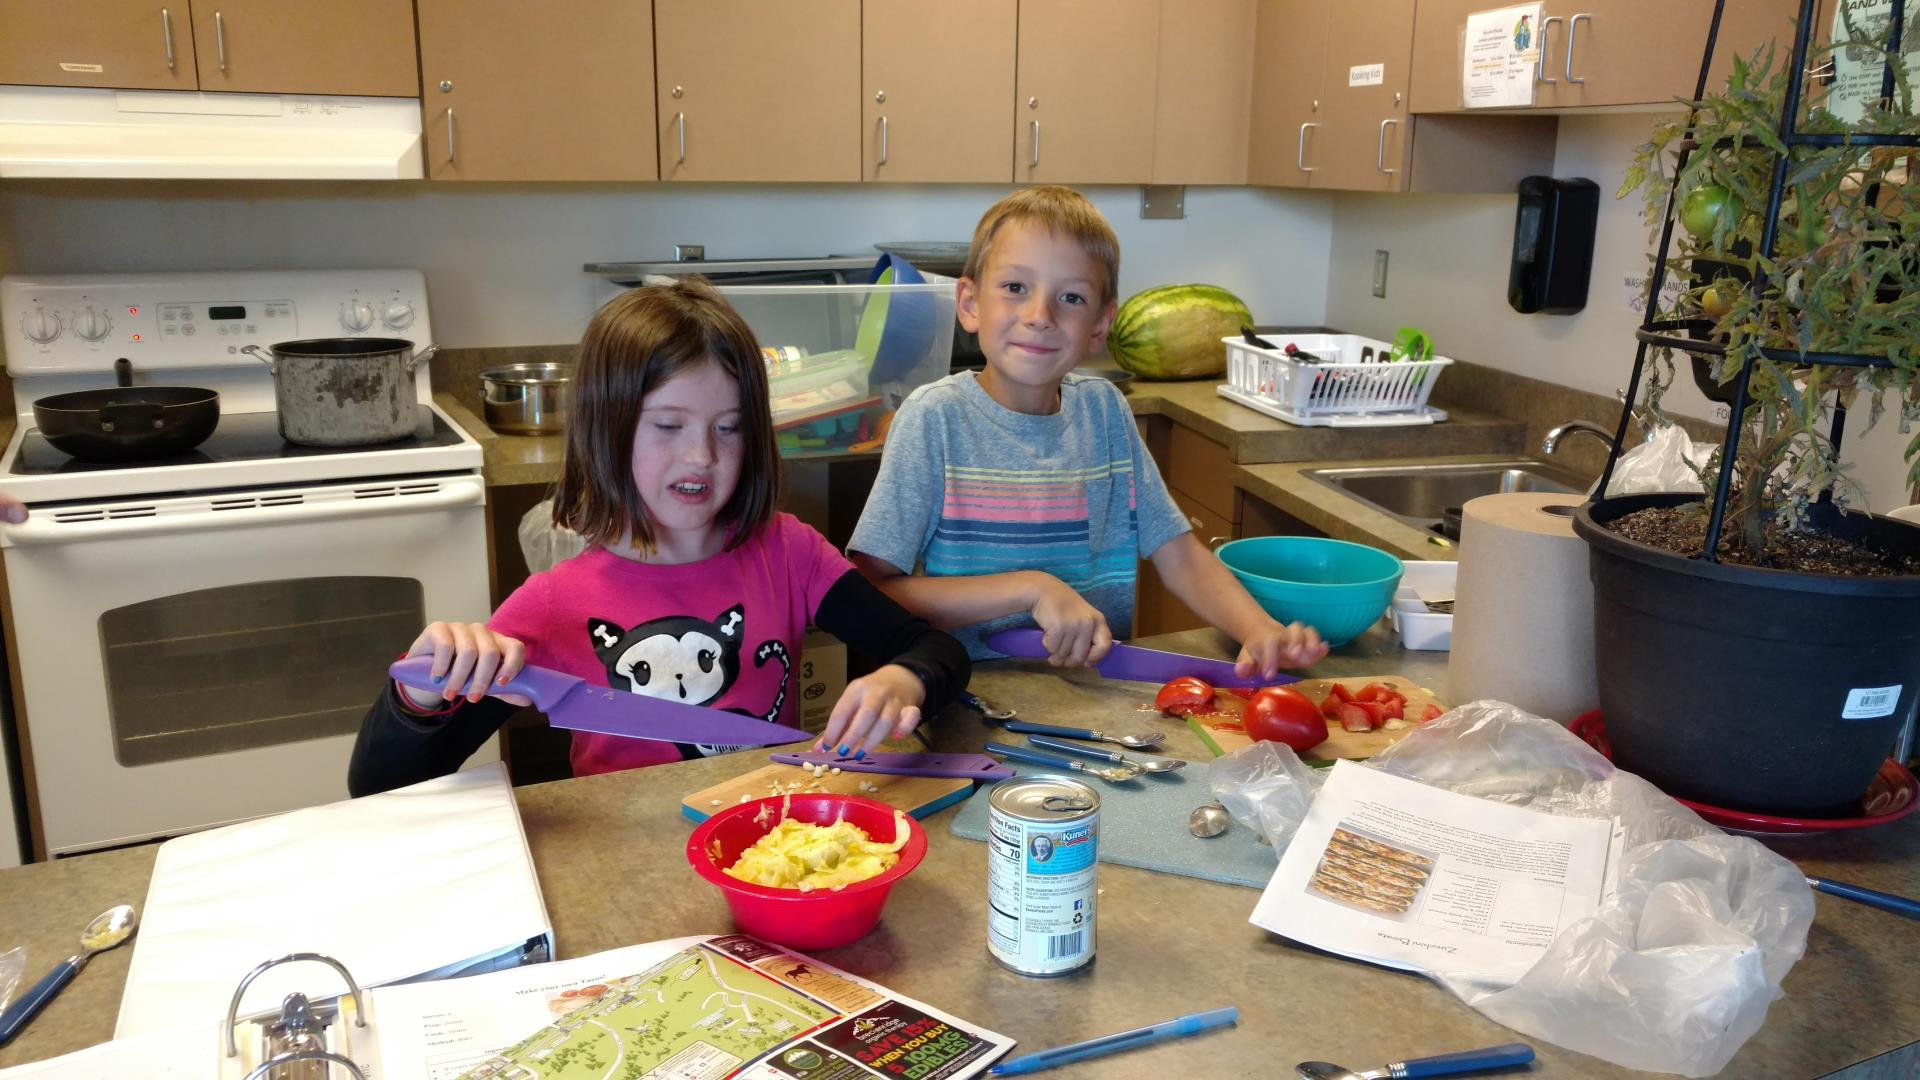 Boy and girl cutting up food in kitchen for cooking class